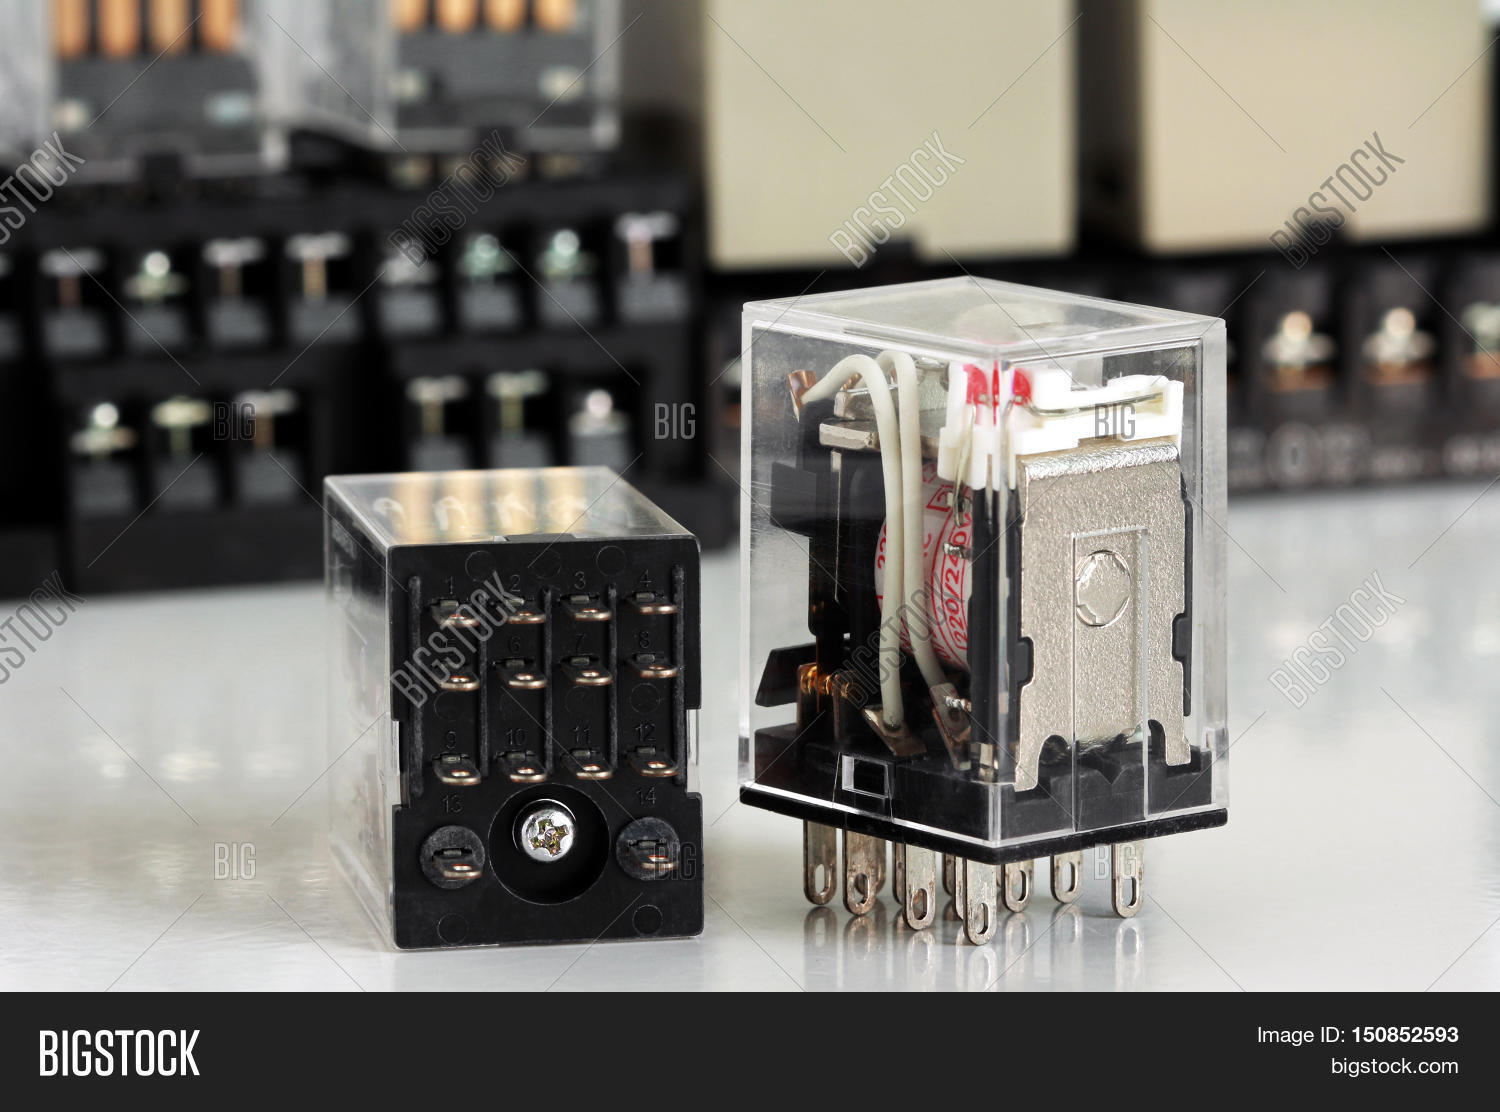 Electrical Auxiliary Image & Photo (Free Trial) | Bigstock on